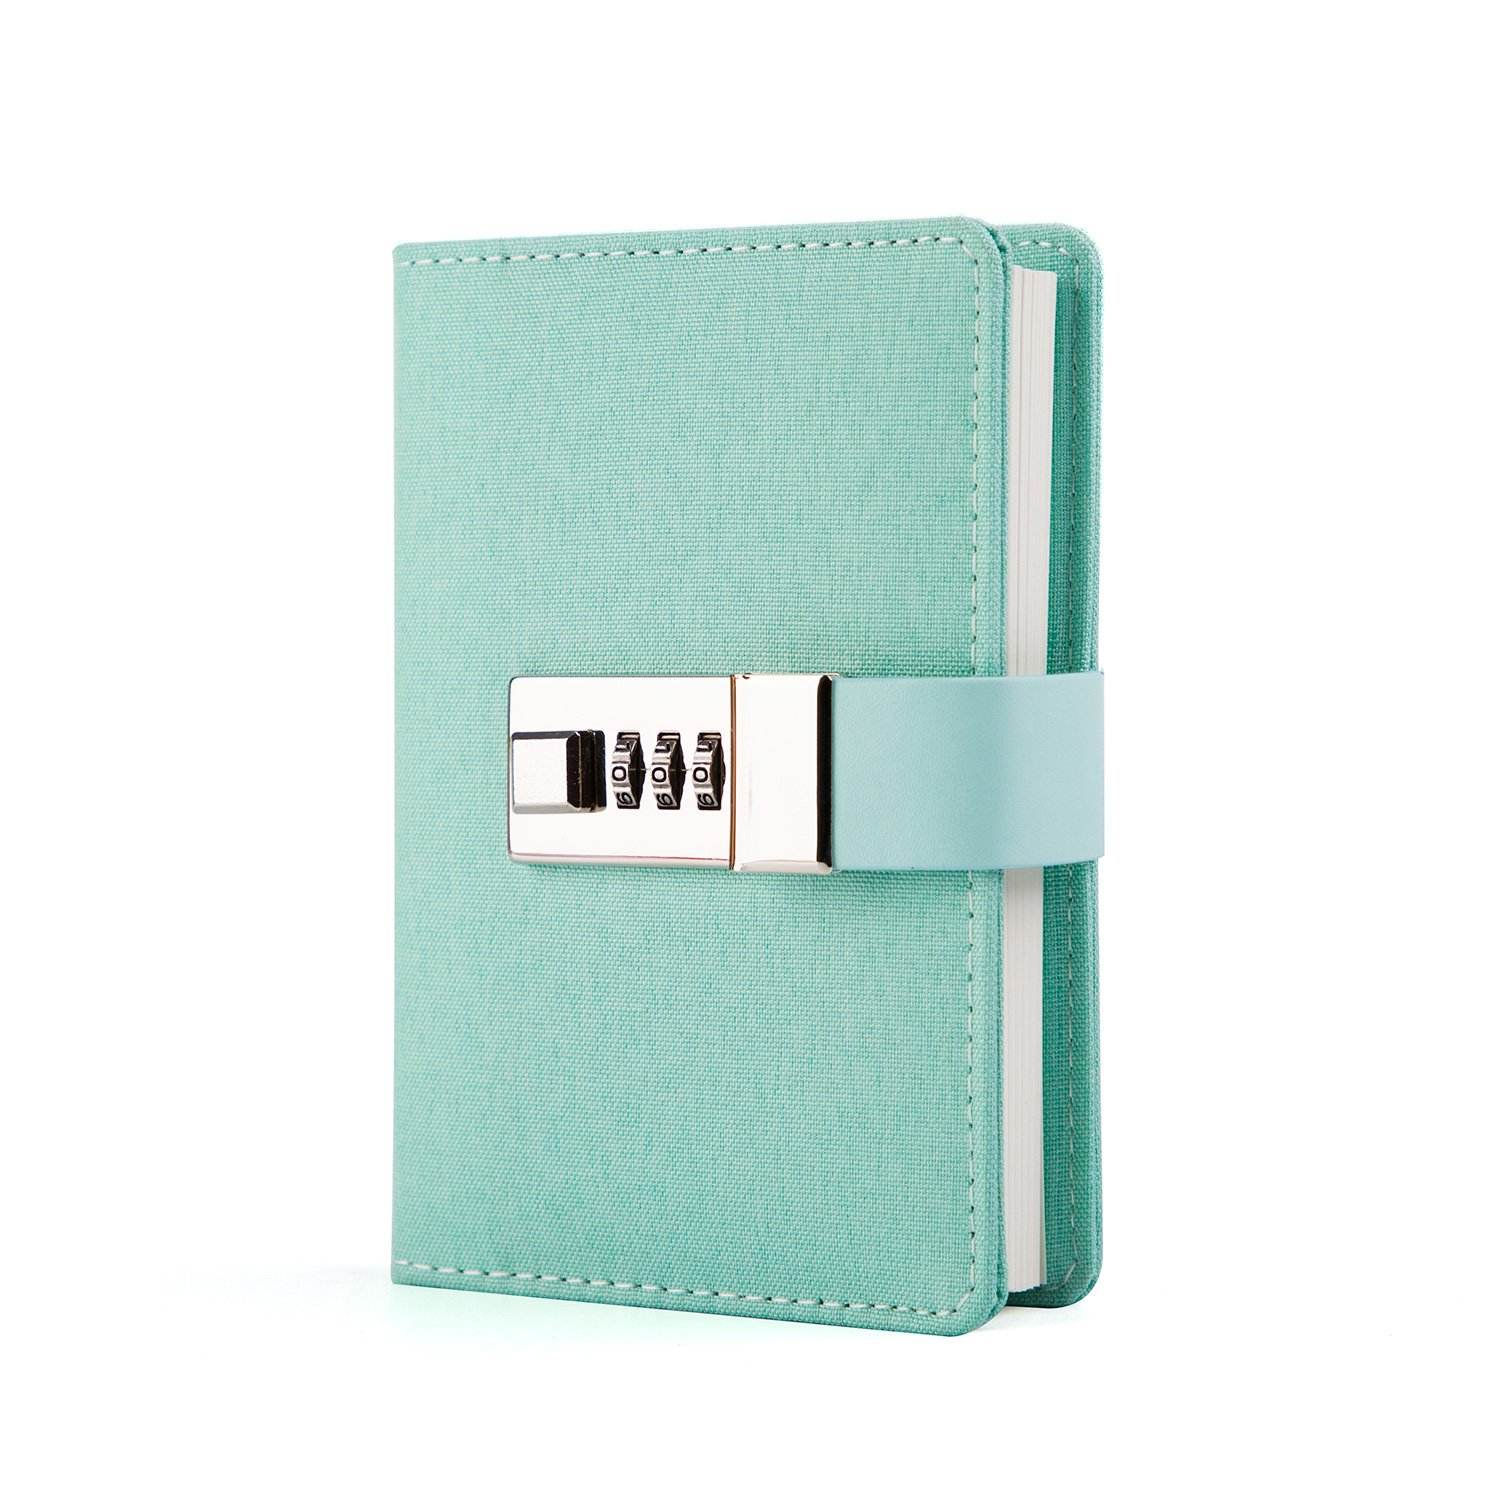 Small Fabric Hardcover Password Lock Note Book from School Supplier